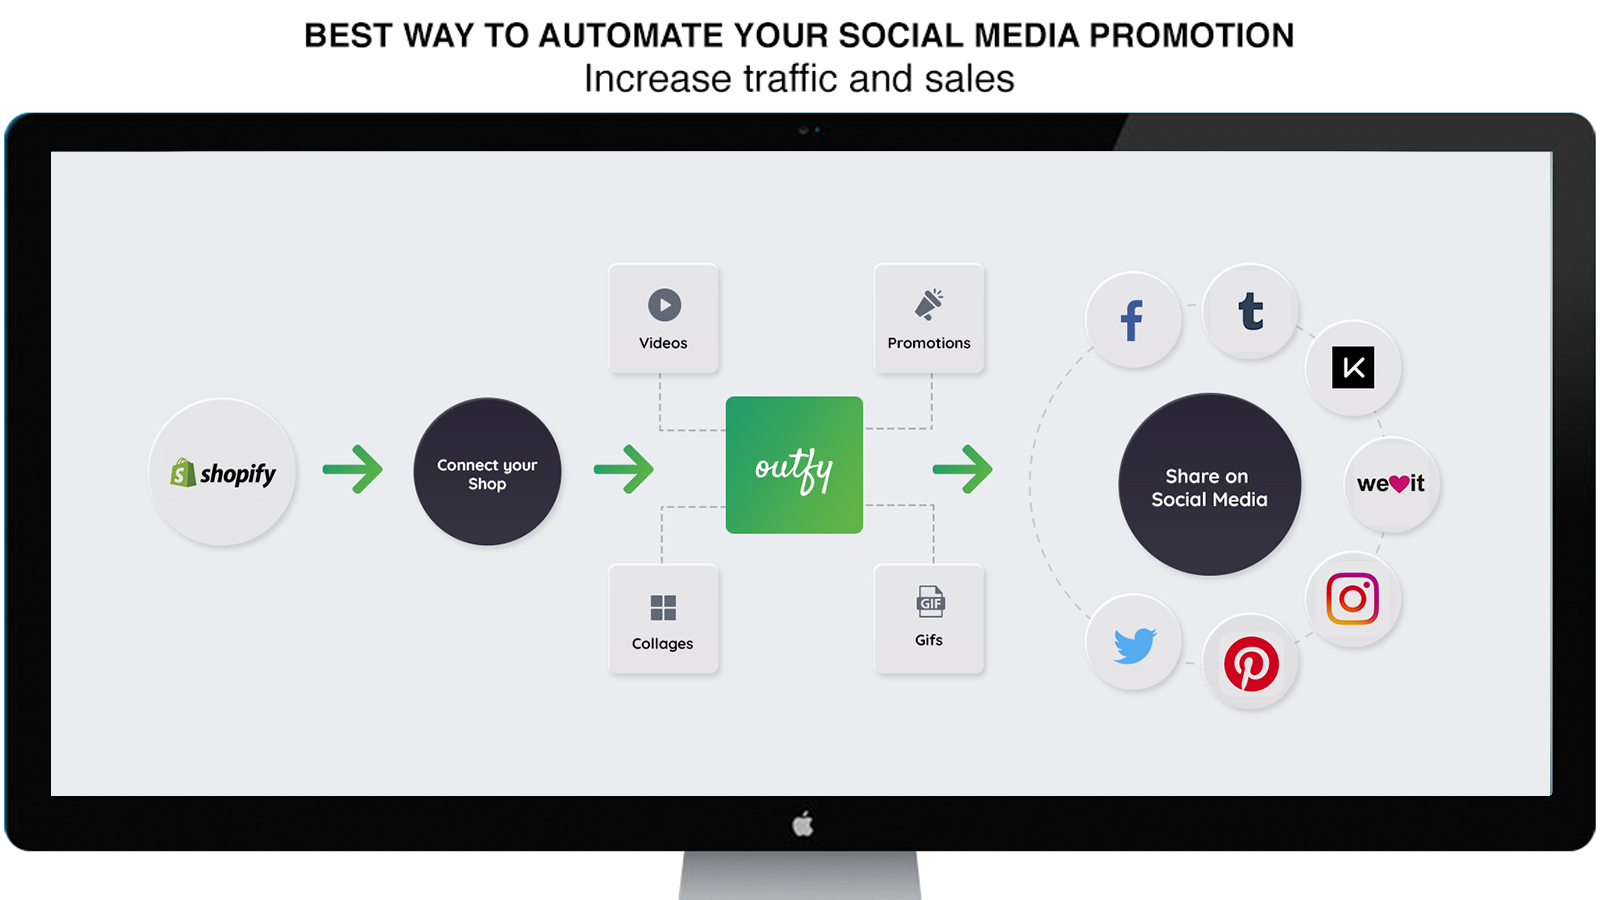 Outfy ‑ Automate Social Media